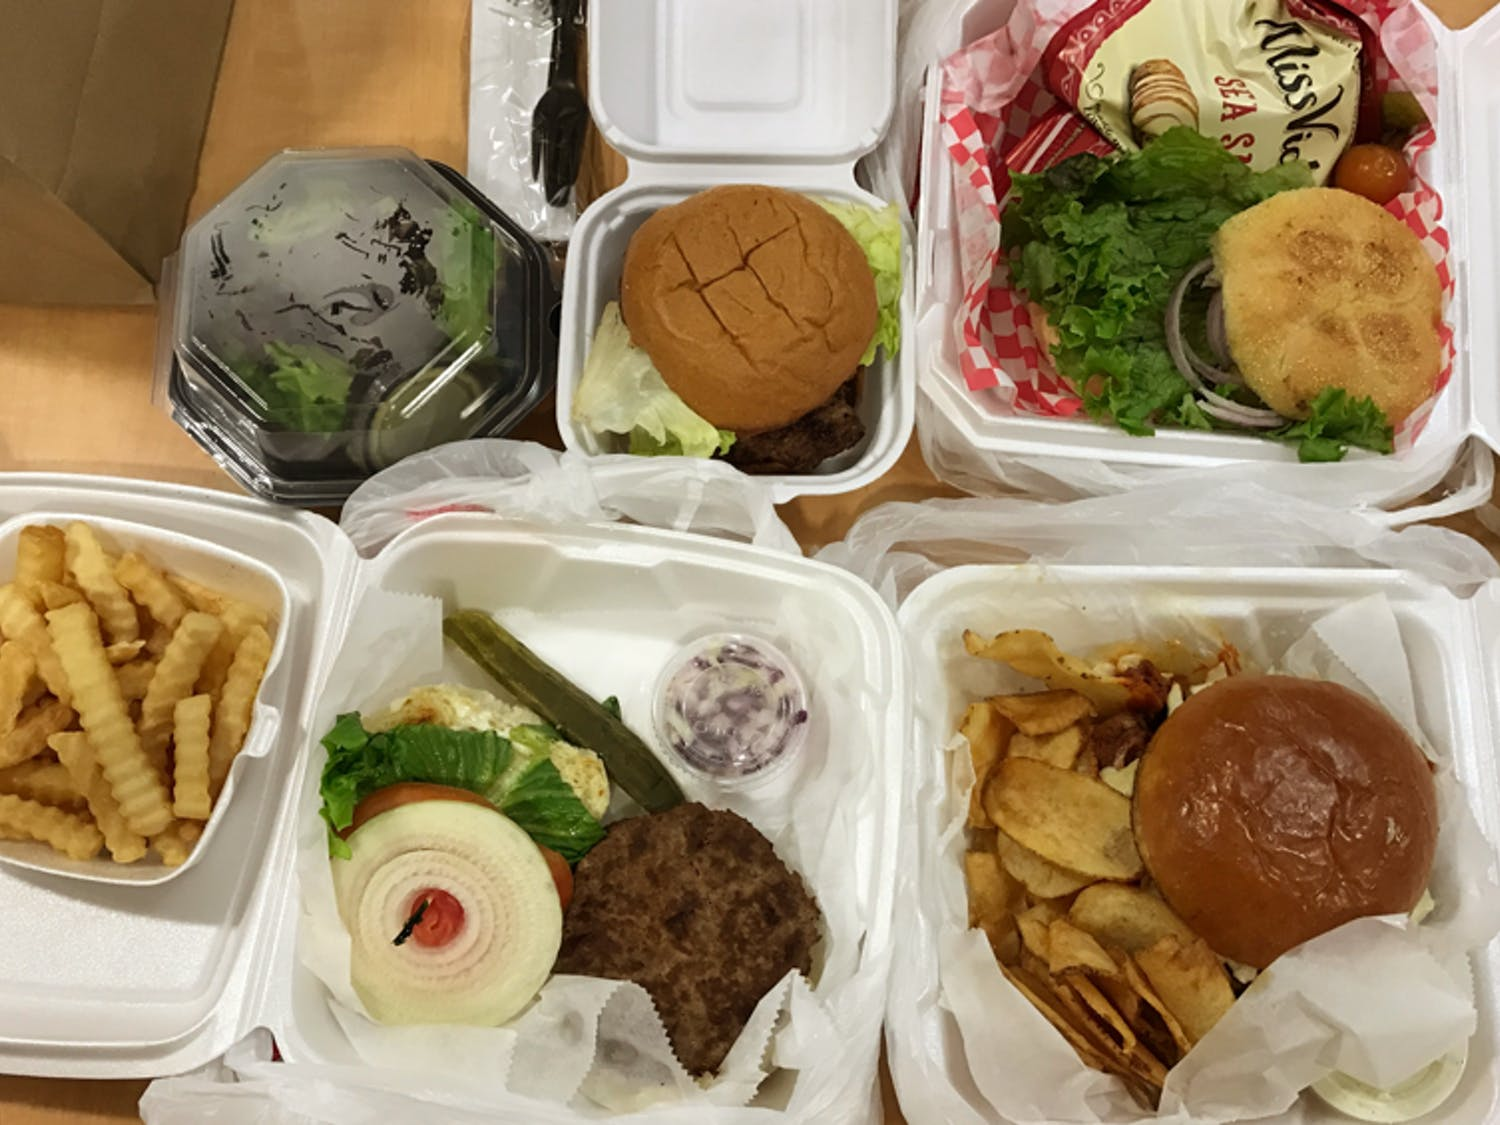 The burgers were rated on a scale of one to five based on the juiciness of the meat, flavor, bun and wow factor.